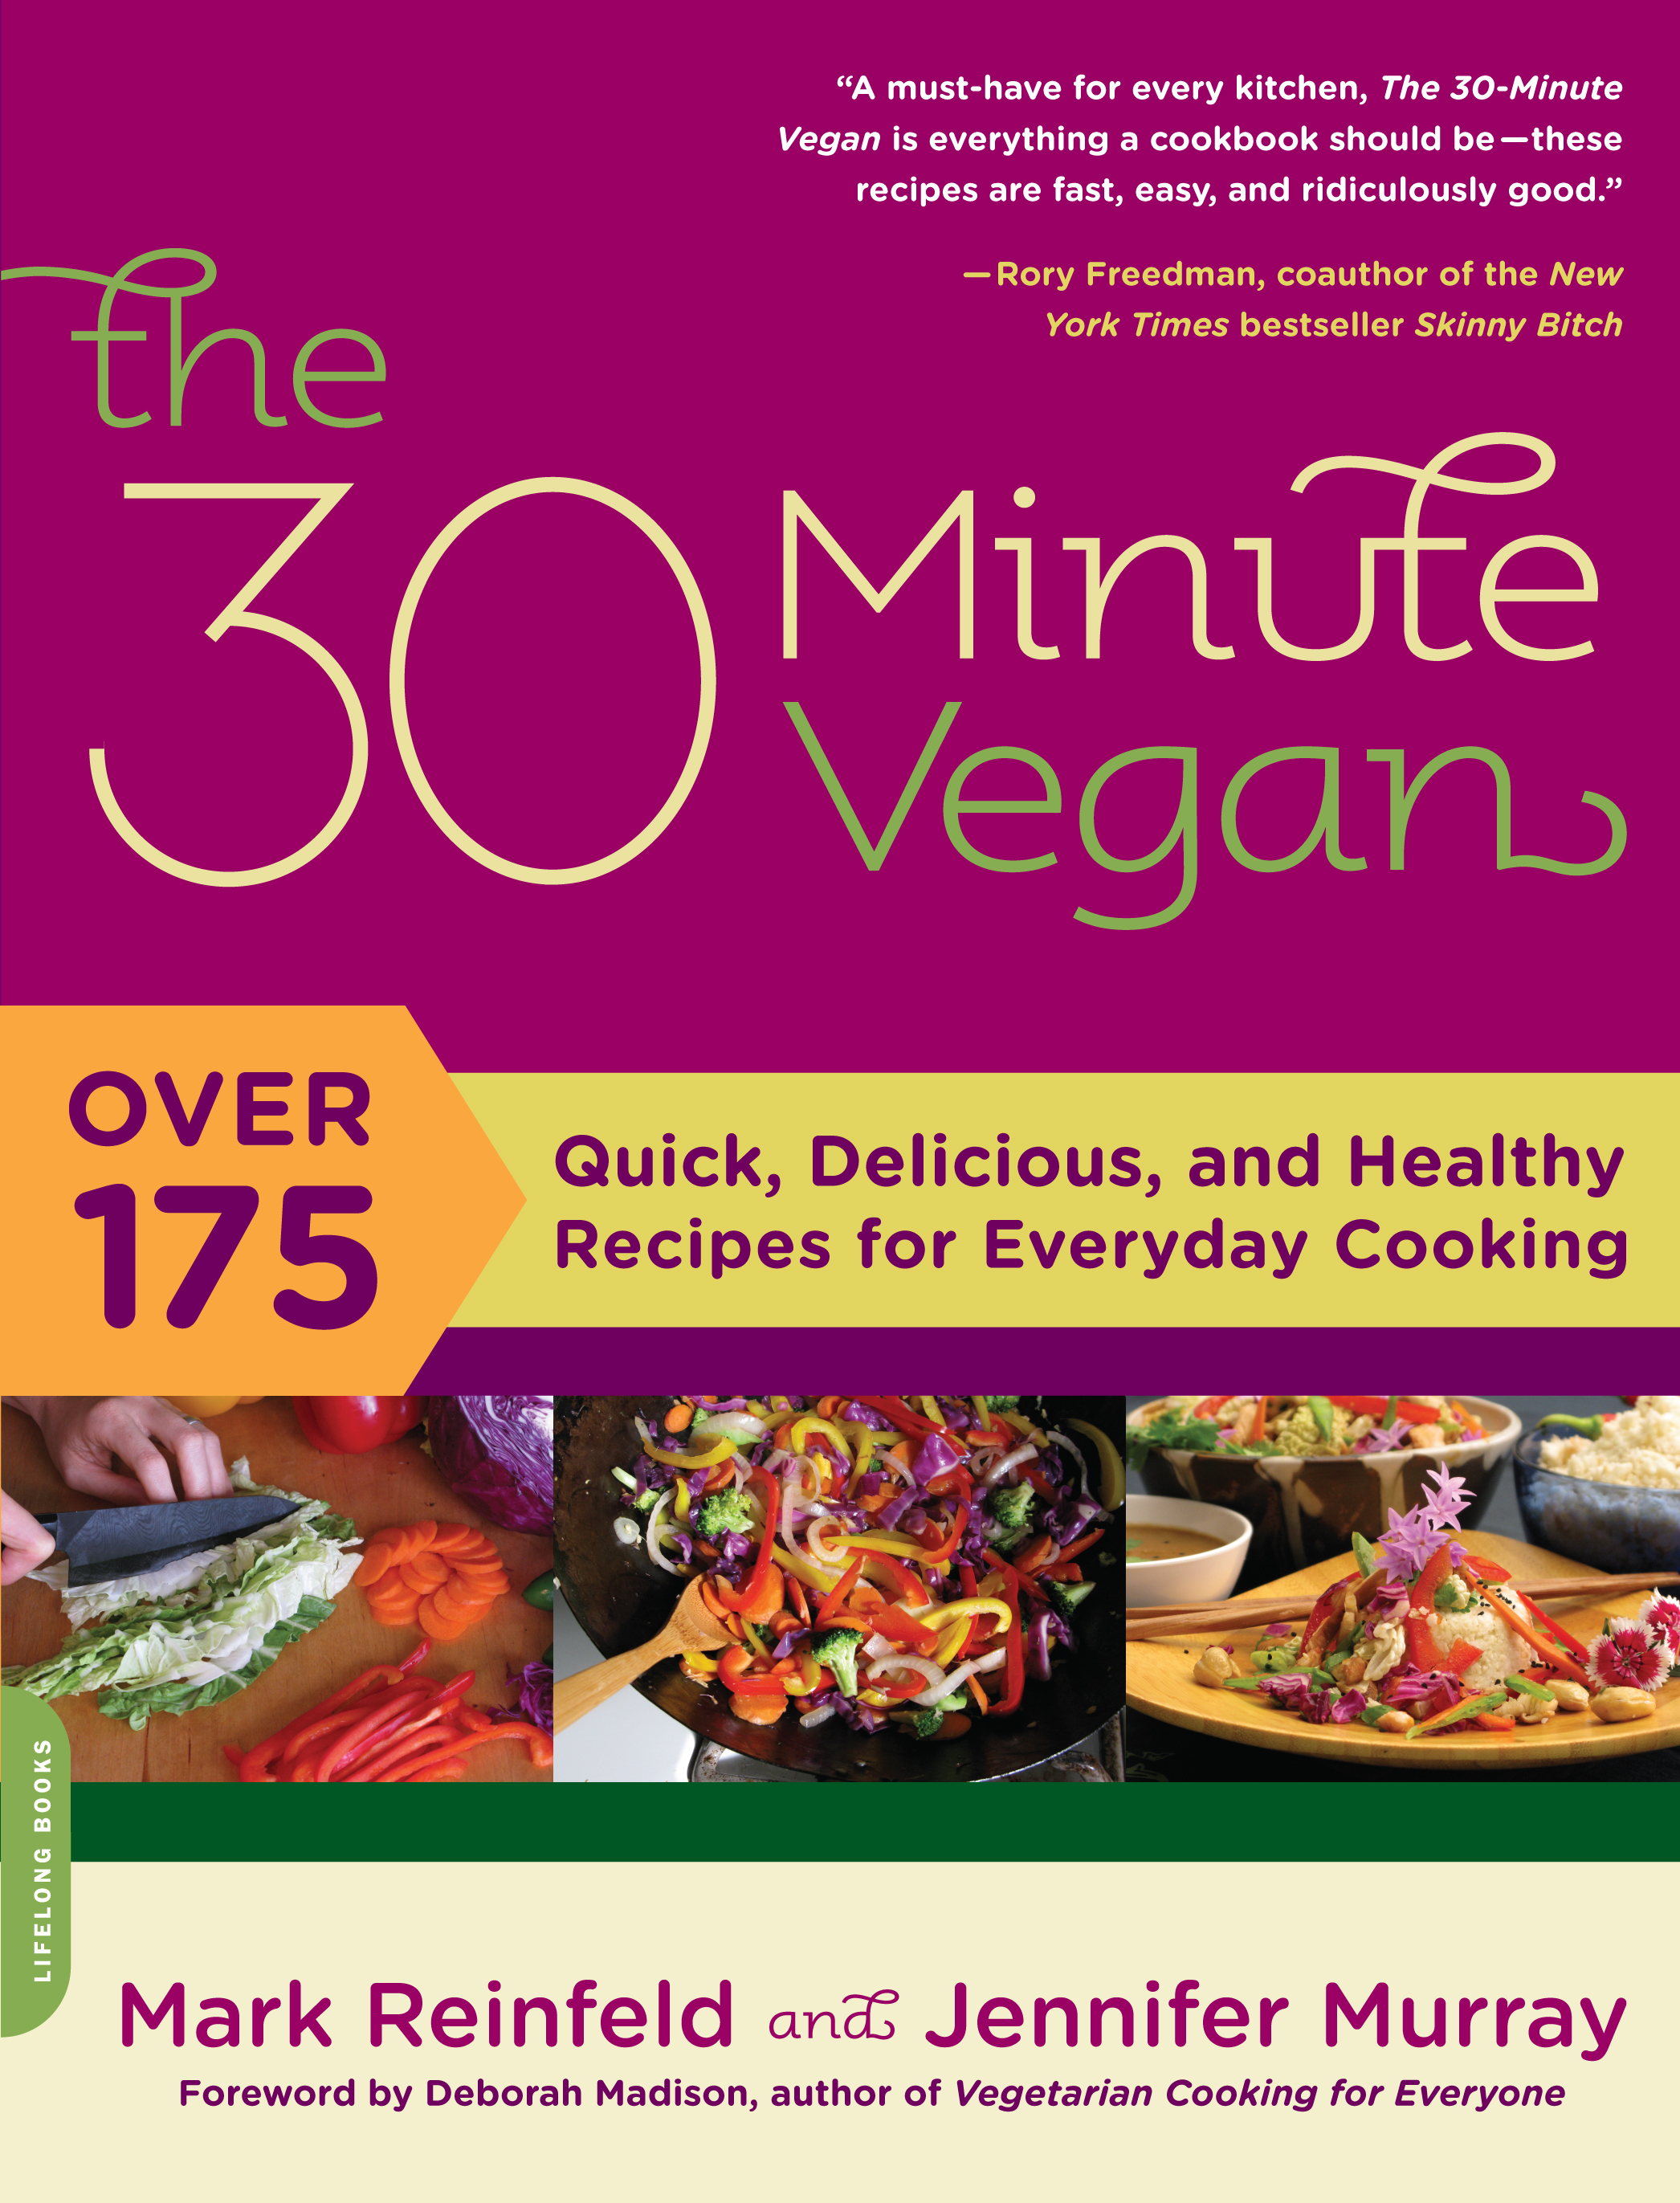 vegan recipes vegan cookbook vegan classes 30 minute vegan